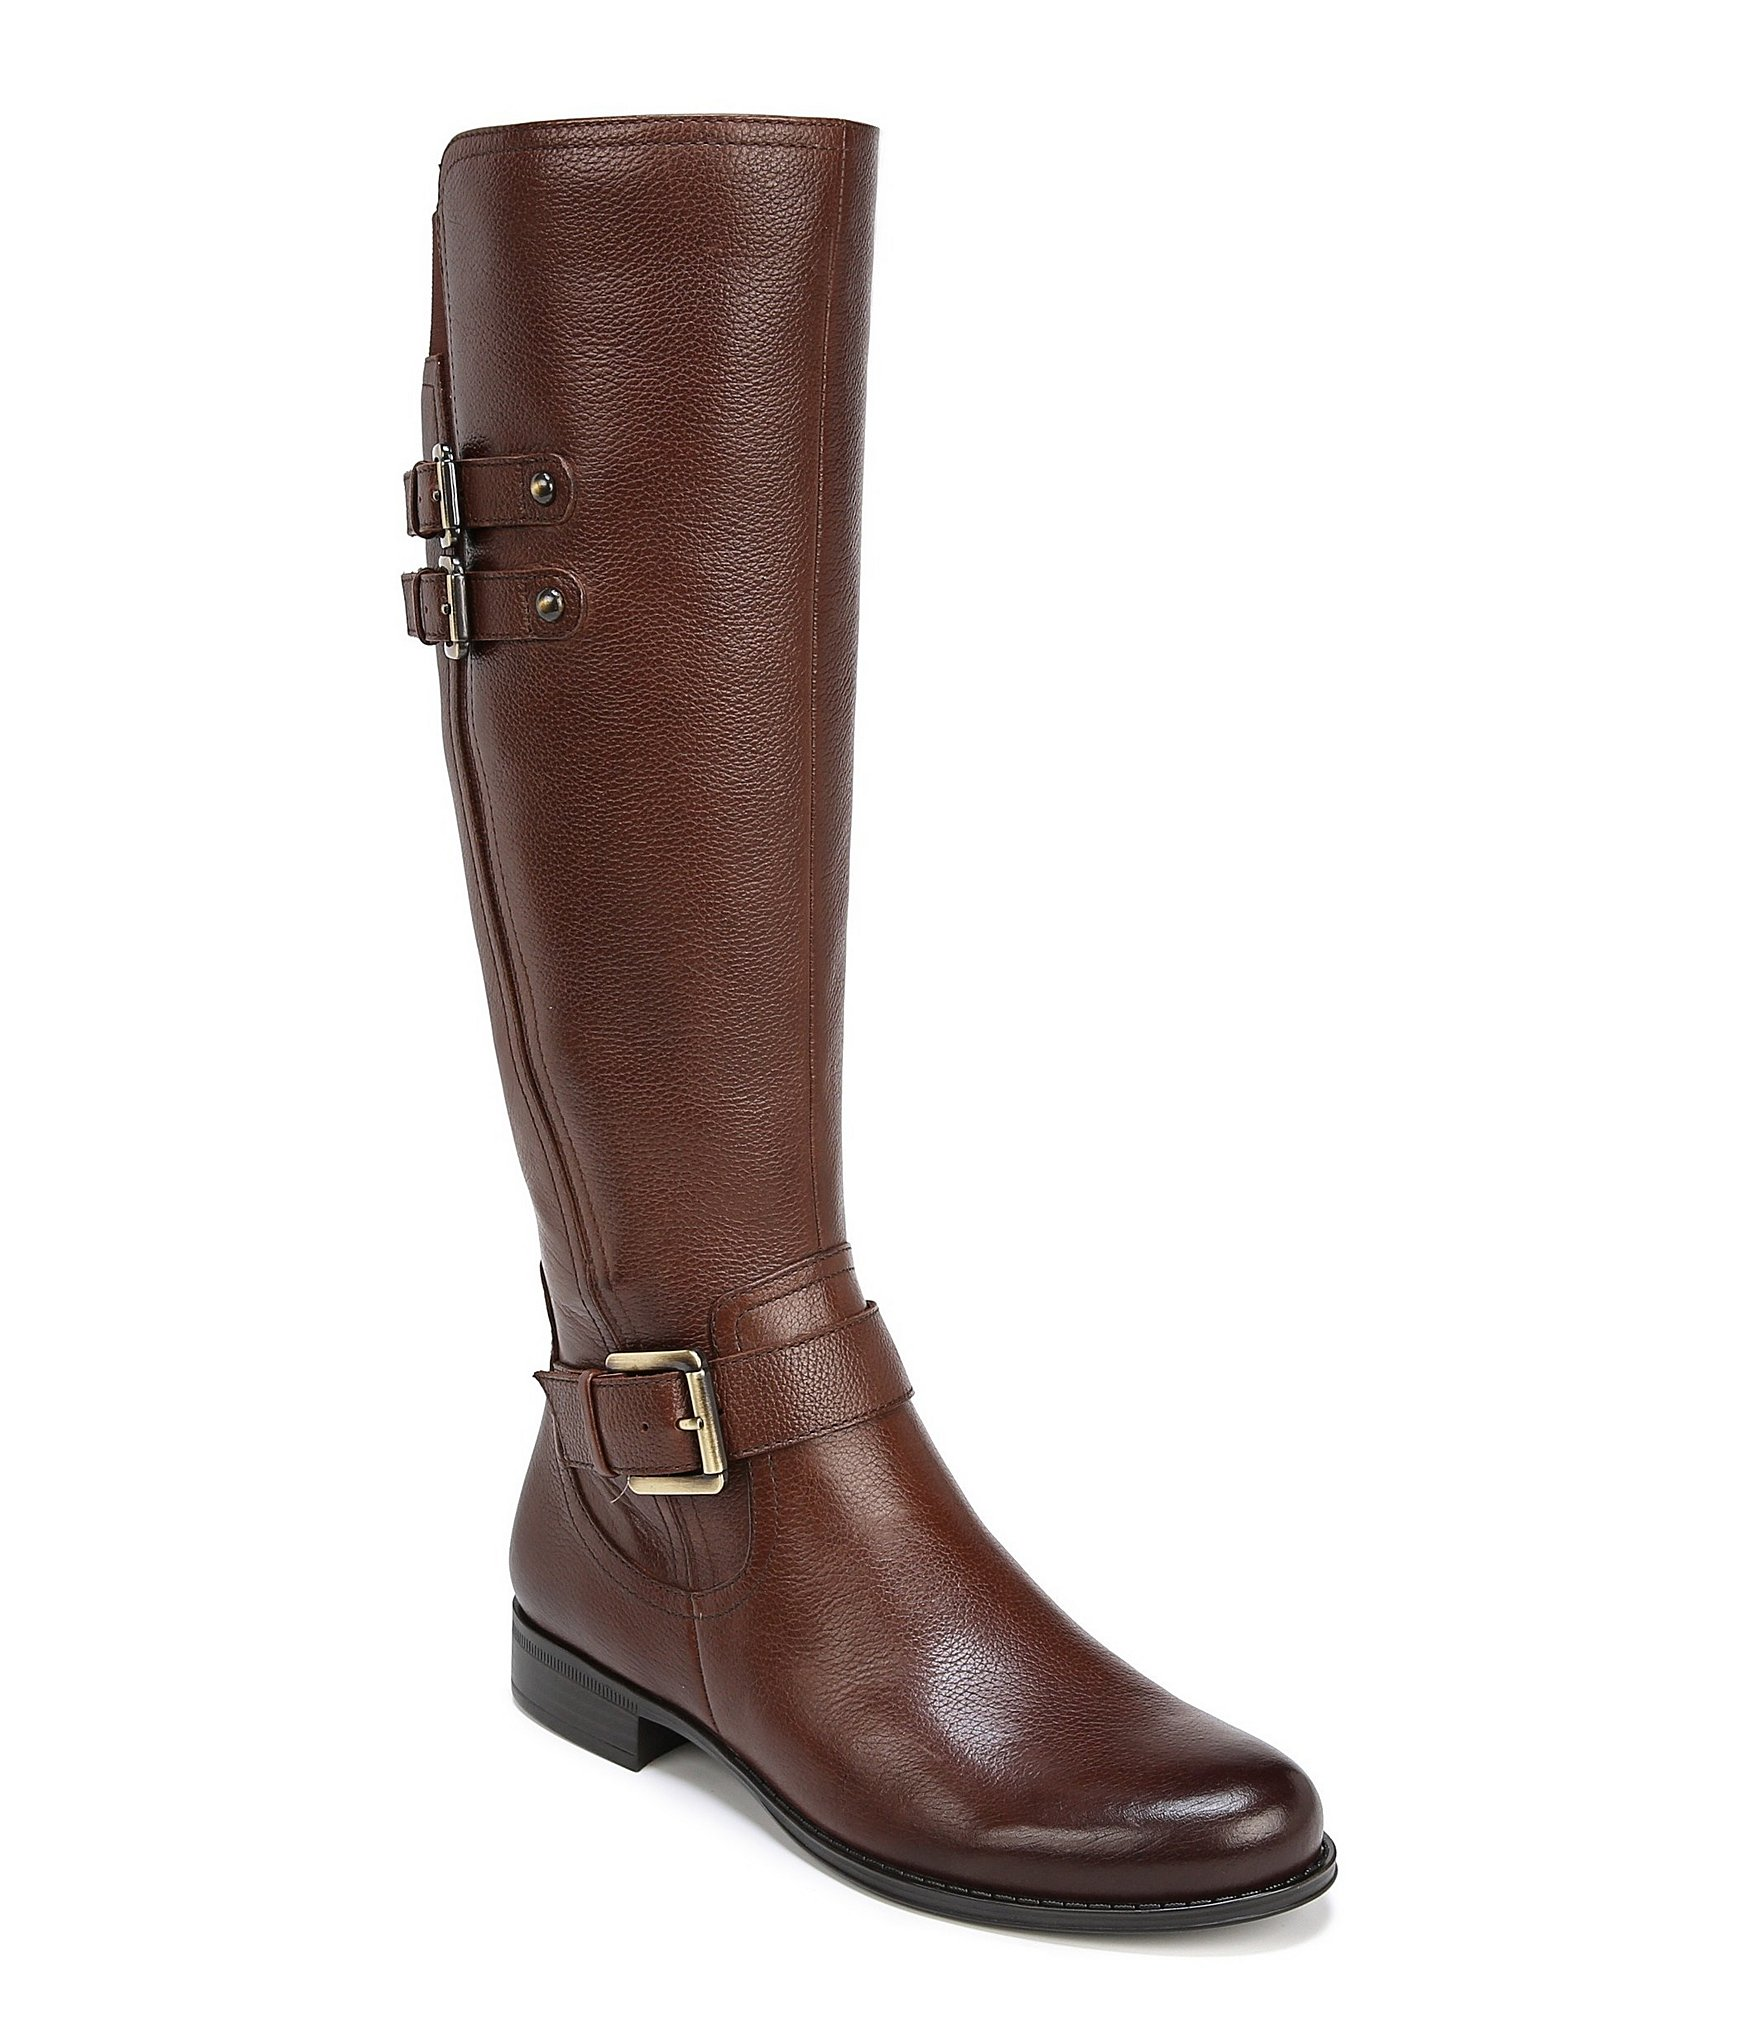 Jessie Wide Calf Buckle Detail Riding Boots by Naturalizer